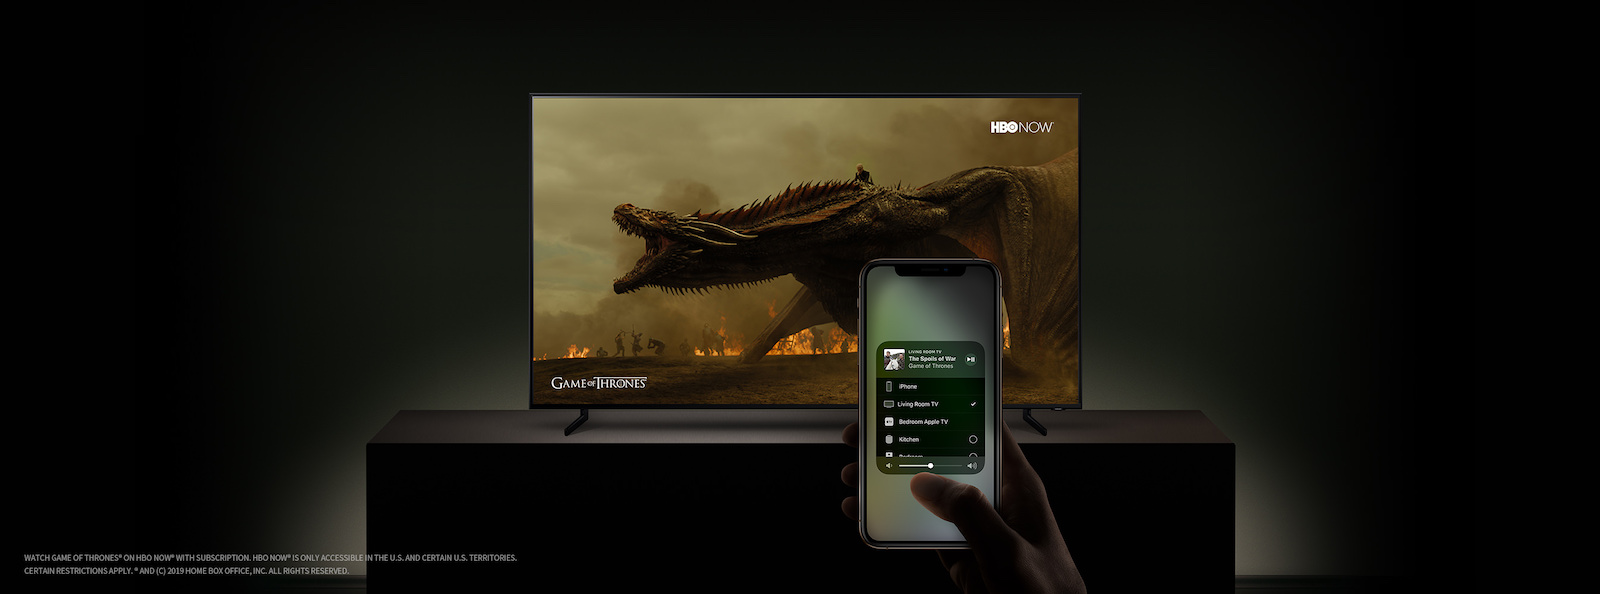 Samsung-TV_Airplay.jpg